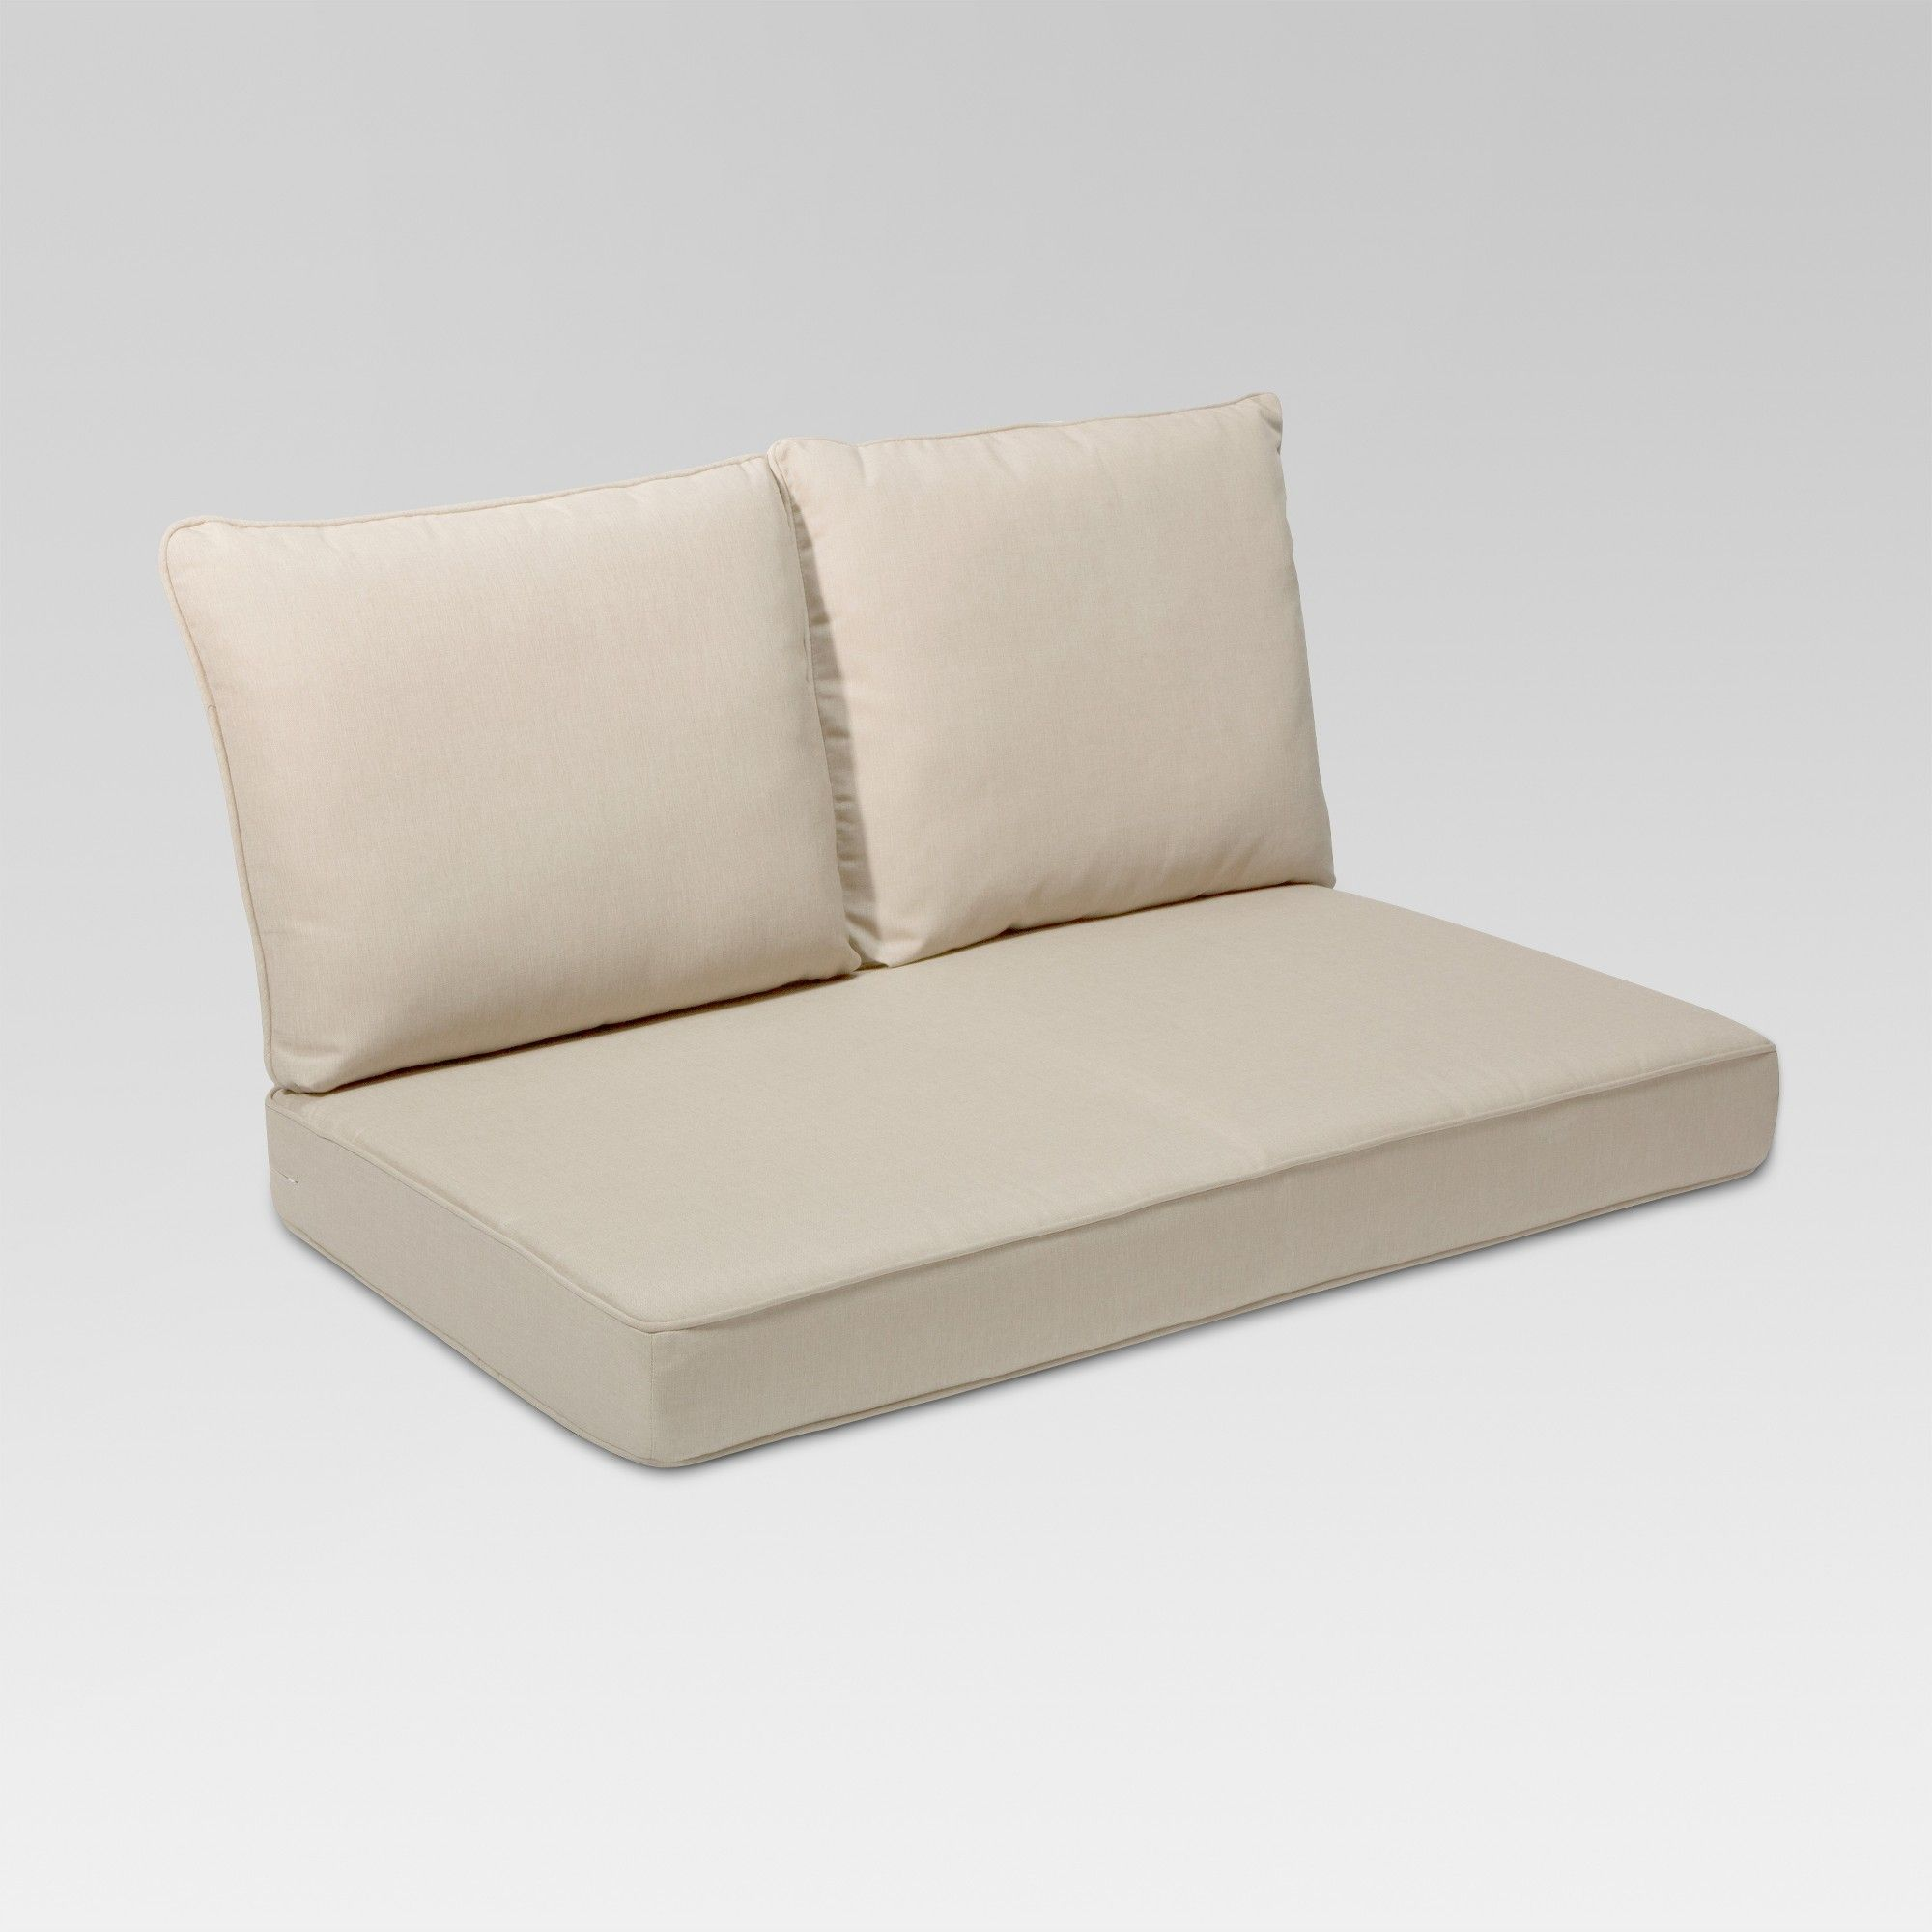 Awesome Rolston 3Pc Outdoor Replacement Loveseat Cushion Set Beige Creativecarmelina Interior Chair Design Creativecarmelinacom